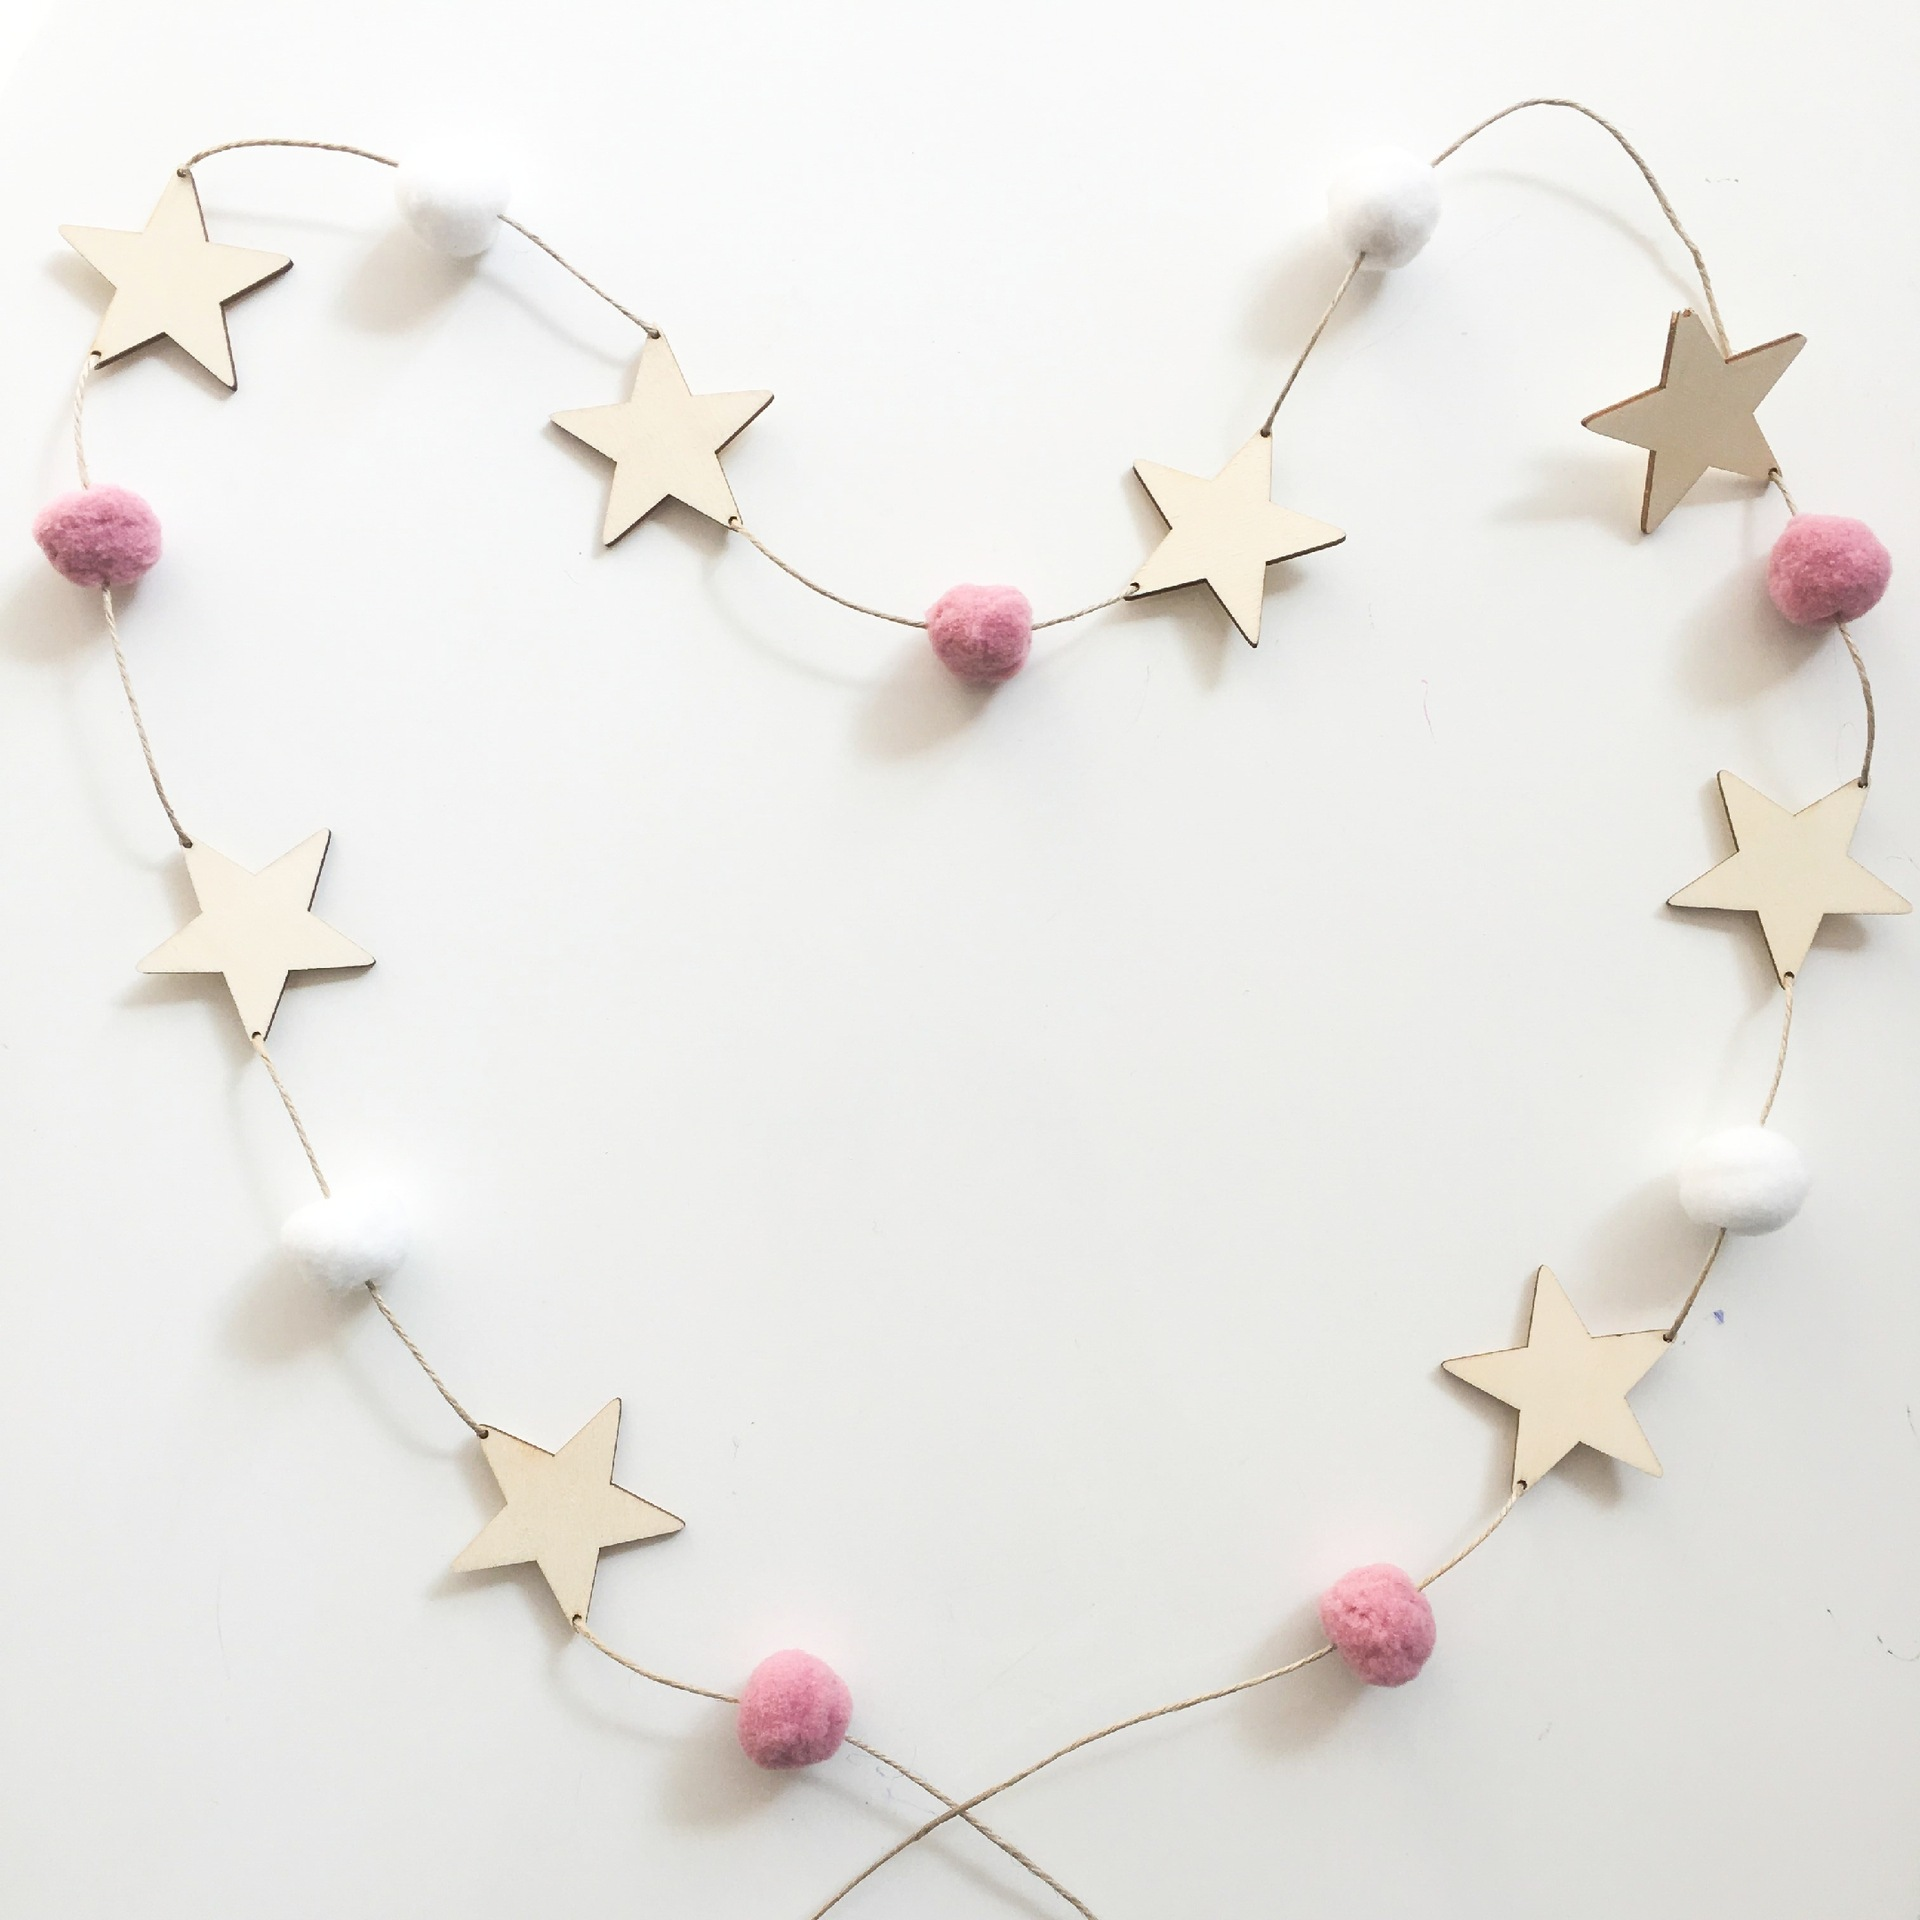 Baby Room Decoration Nordic Style Wall Hanging Ornament For Photography Props Cute Star Shape Wooden Beads Tassel Pendant